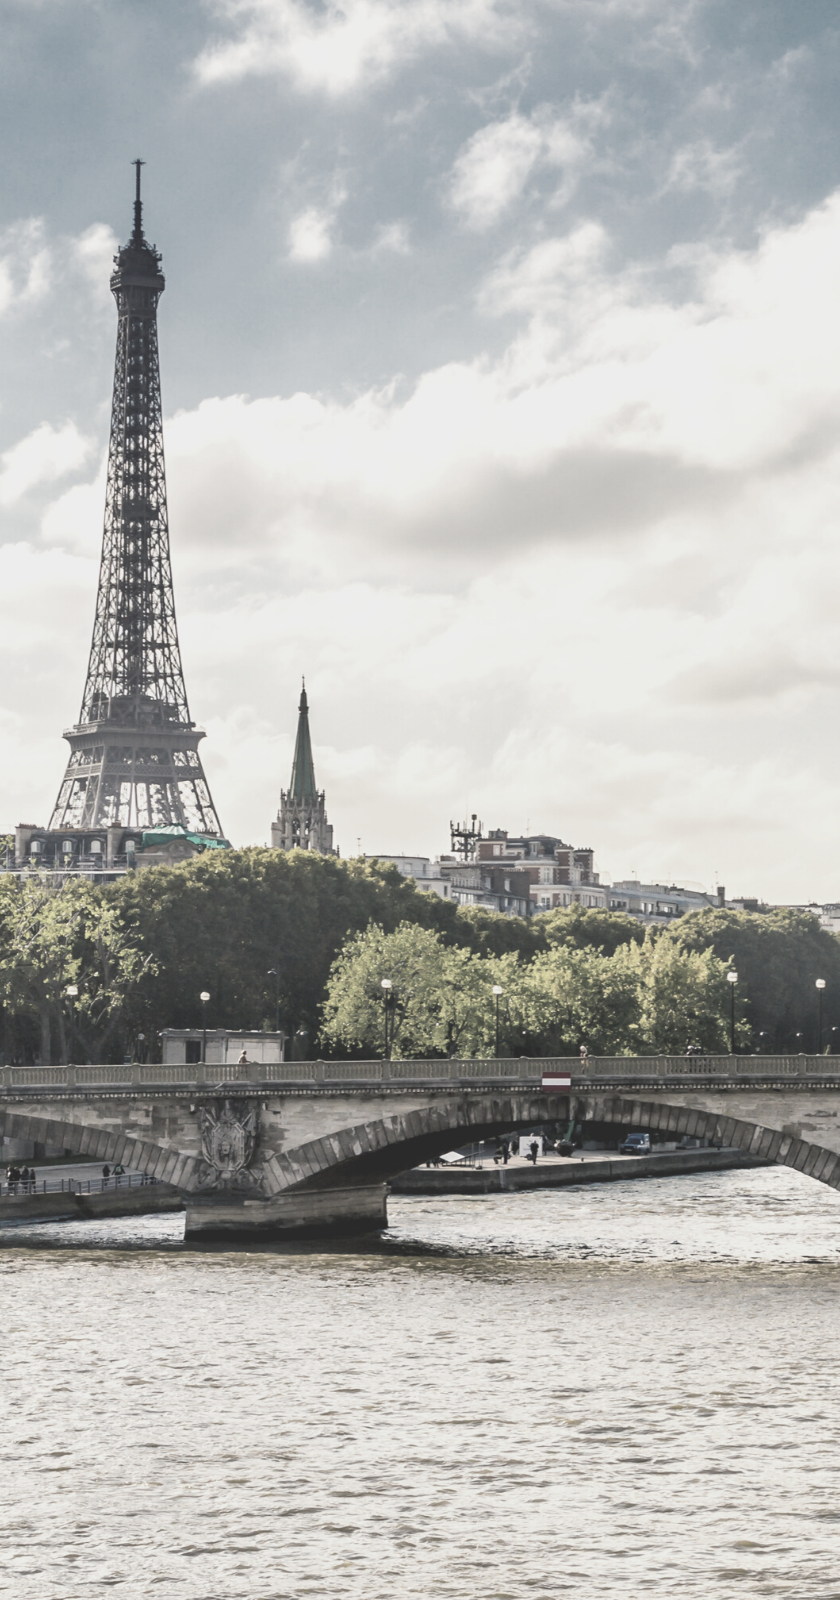 Wallpapers For Iphone Best Paris Tumblr Aesthetics Wallpapers Tgbl In 2020 Phone Wallpaper Images Wallpaper Iphone Love Cool Wallpapers For Phones